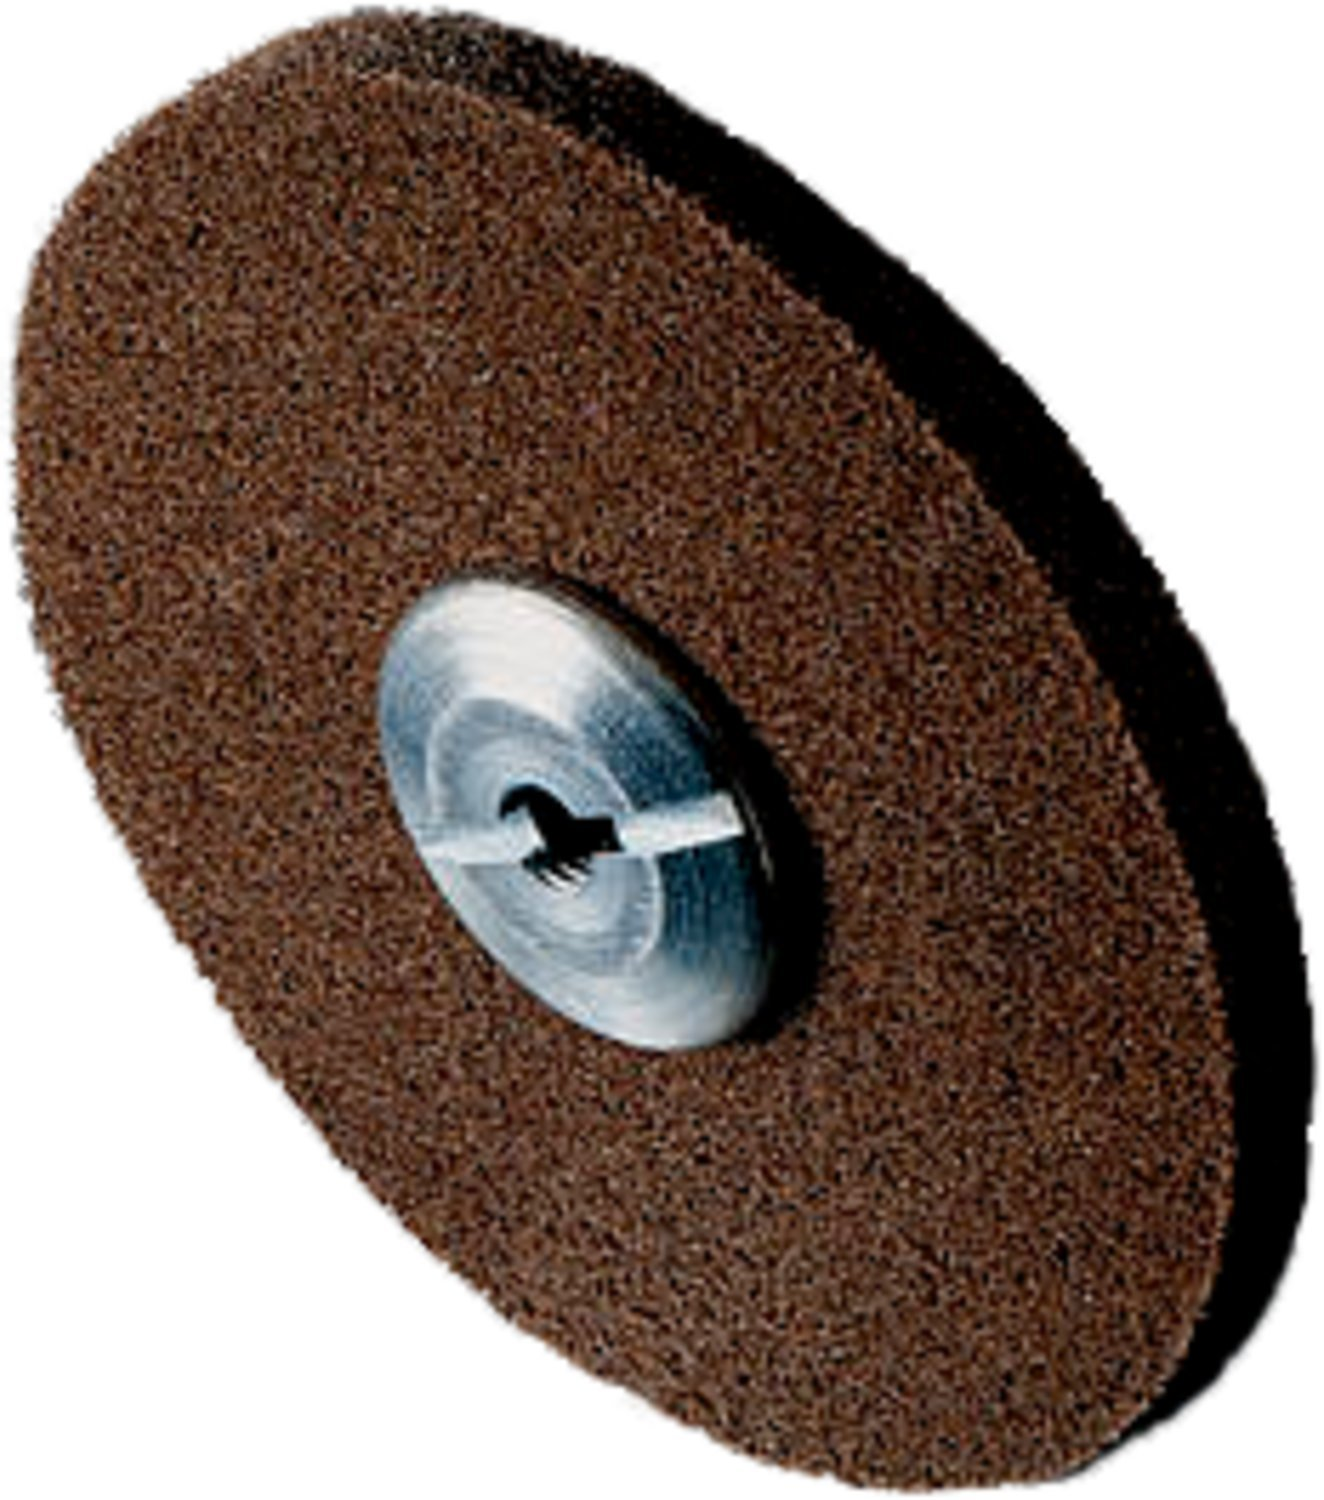 Scotch-Brite 18594 EXL Unitized Wheel Pack of 8 6 Diameter 5000 RPM Abrasive Grit 6 x 1//4 x 3//8 2S FIN